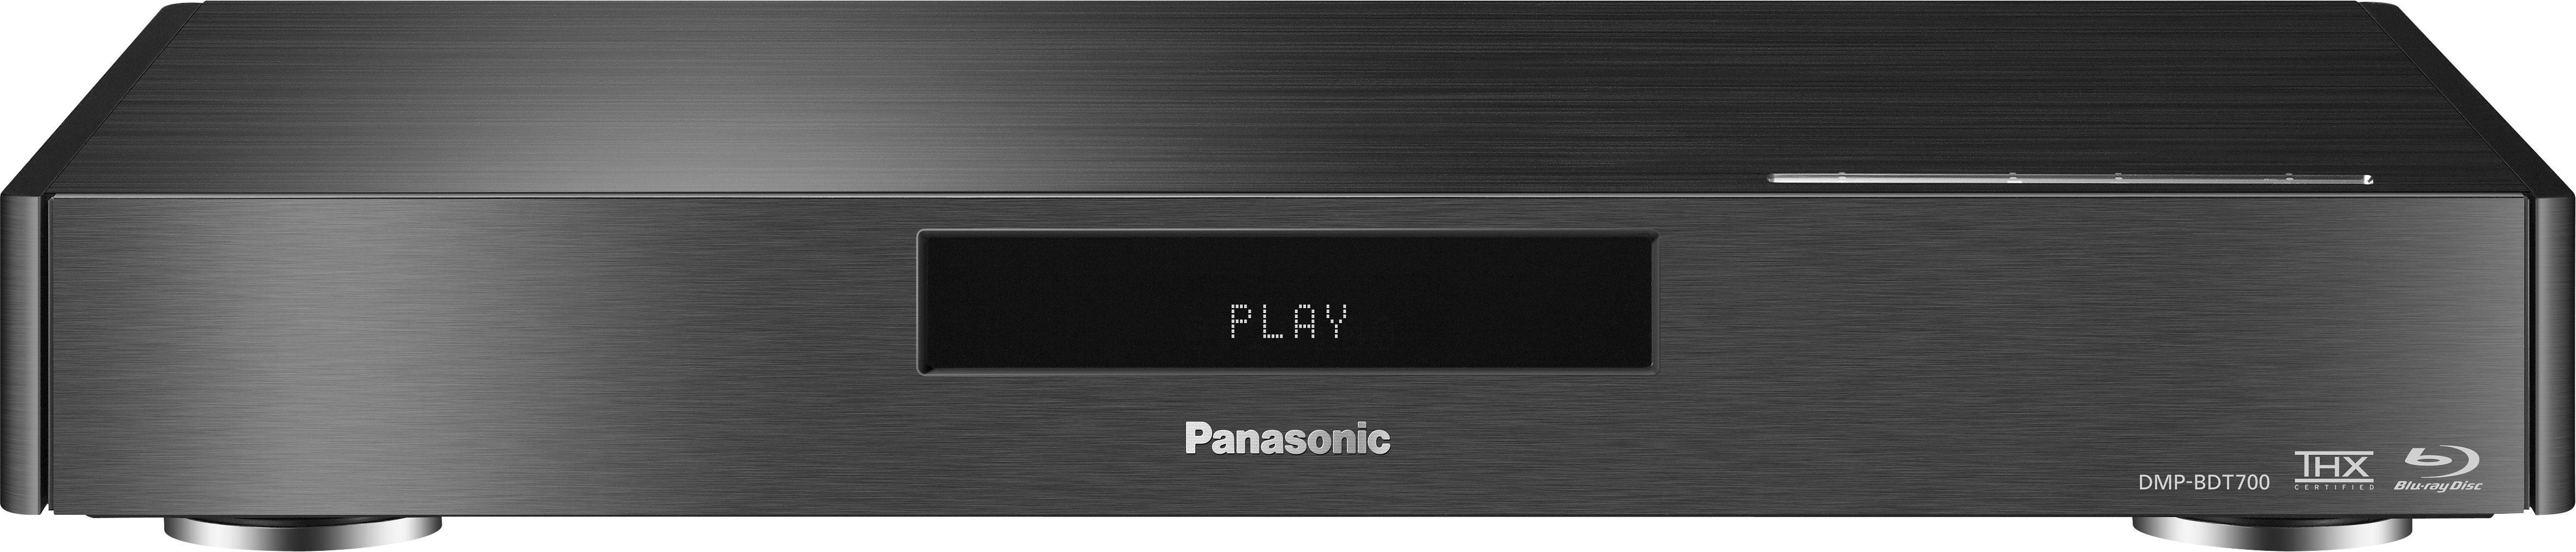 Panasonic DMP-BDT700EG9 Blu-ray-Player, 3D-fähig, WLAN